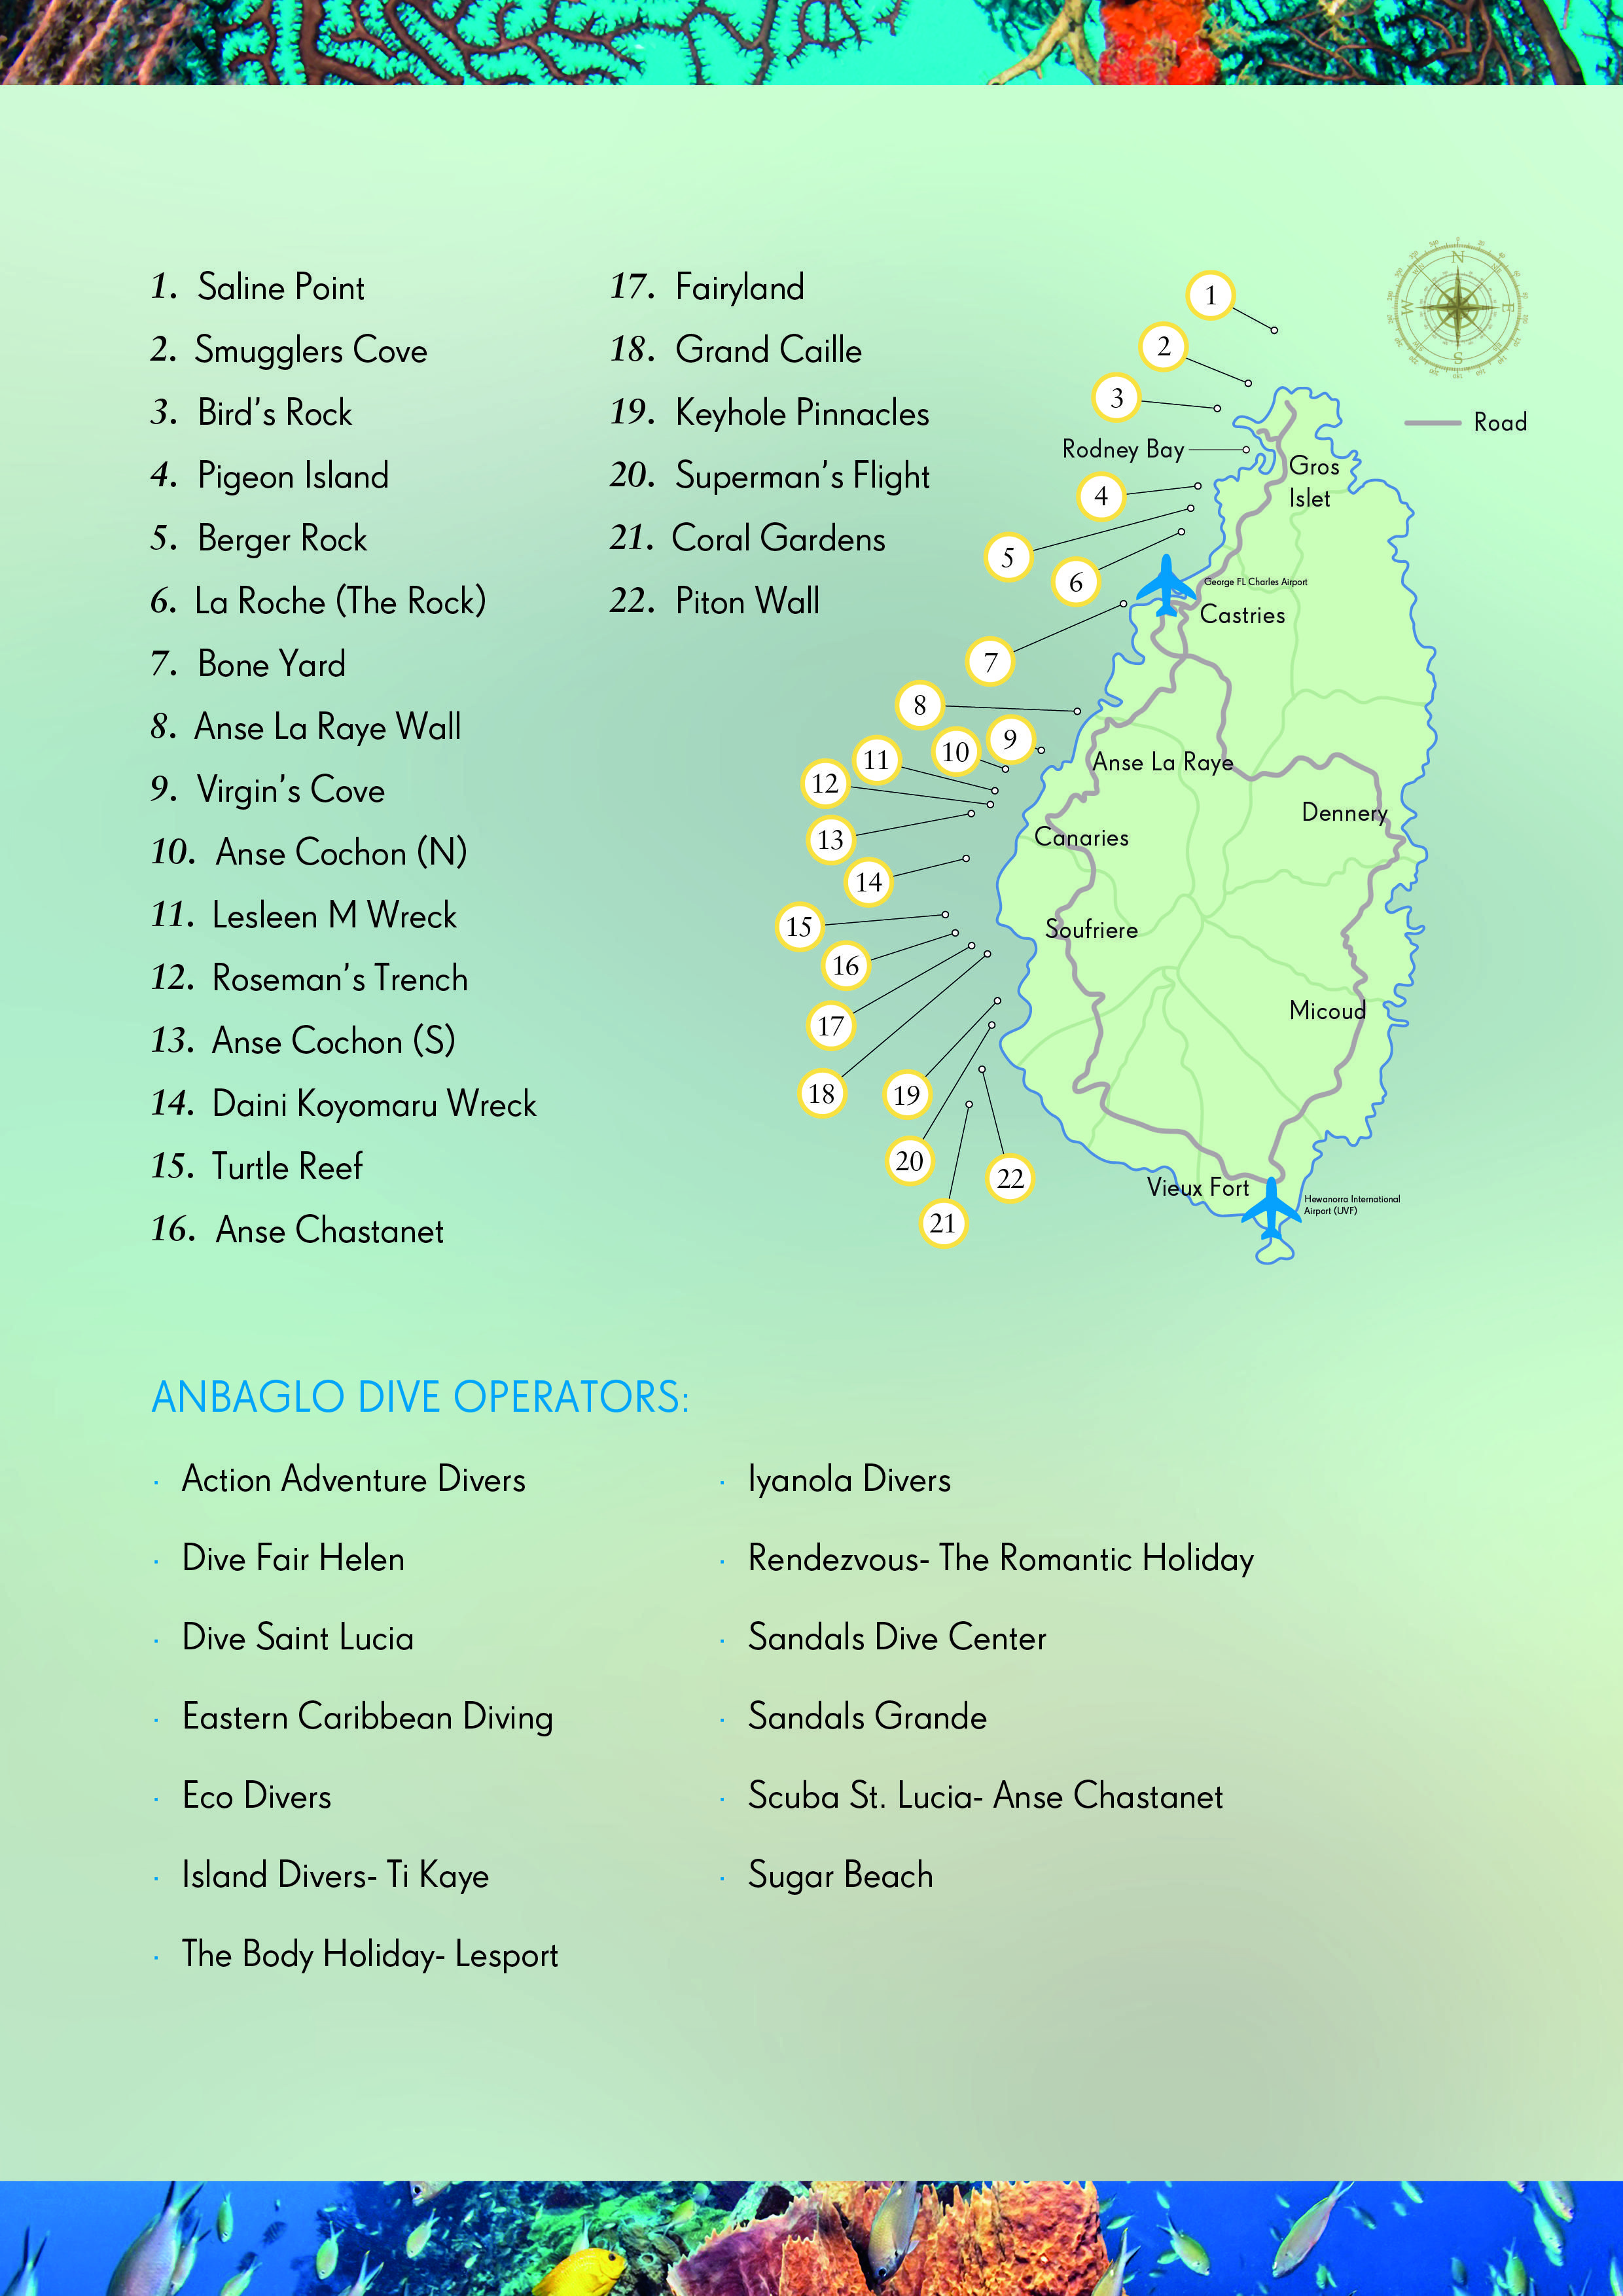 Saint Lucia   Diving, Diving course, Coral garden on st. lucia la toc map, british virgin islands, st. lucia country map, costa rica map, santa lucia island on map, turks and caicos islands, suriname map, world map, hotels st. lucia fl map, caribbean map, mexico map, st. lucia flag map, cayman islands, st. lucia climate map, bhutan map, st. lucia political map, antigua and barbuda, st. lucia island resorts map, st lucia satellite map, barbados map, the bahamas, vigie beach map, trinidad and tobago, serbia map, sri lanka map, saint kitts and nevis, belize map,